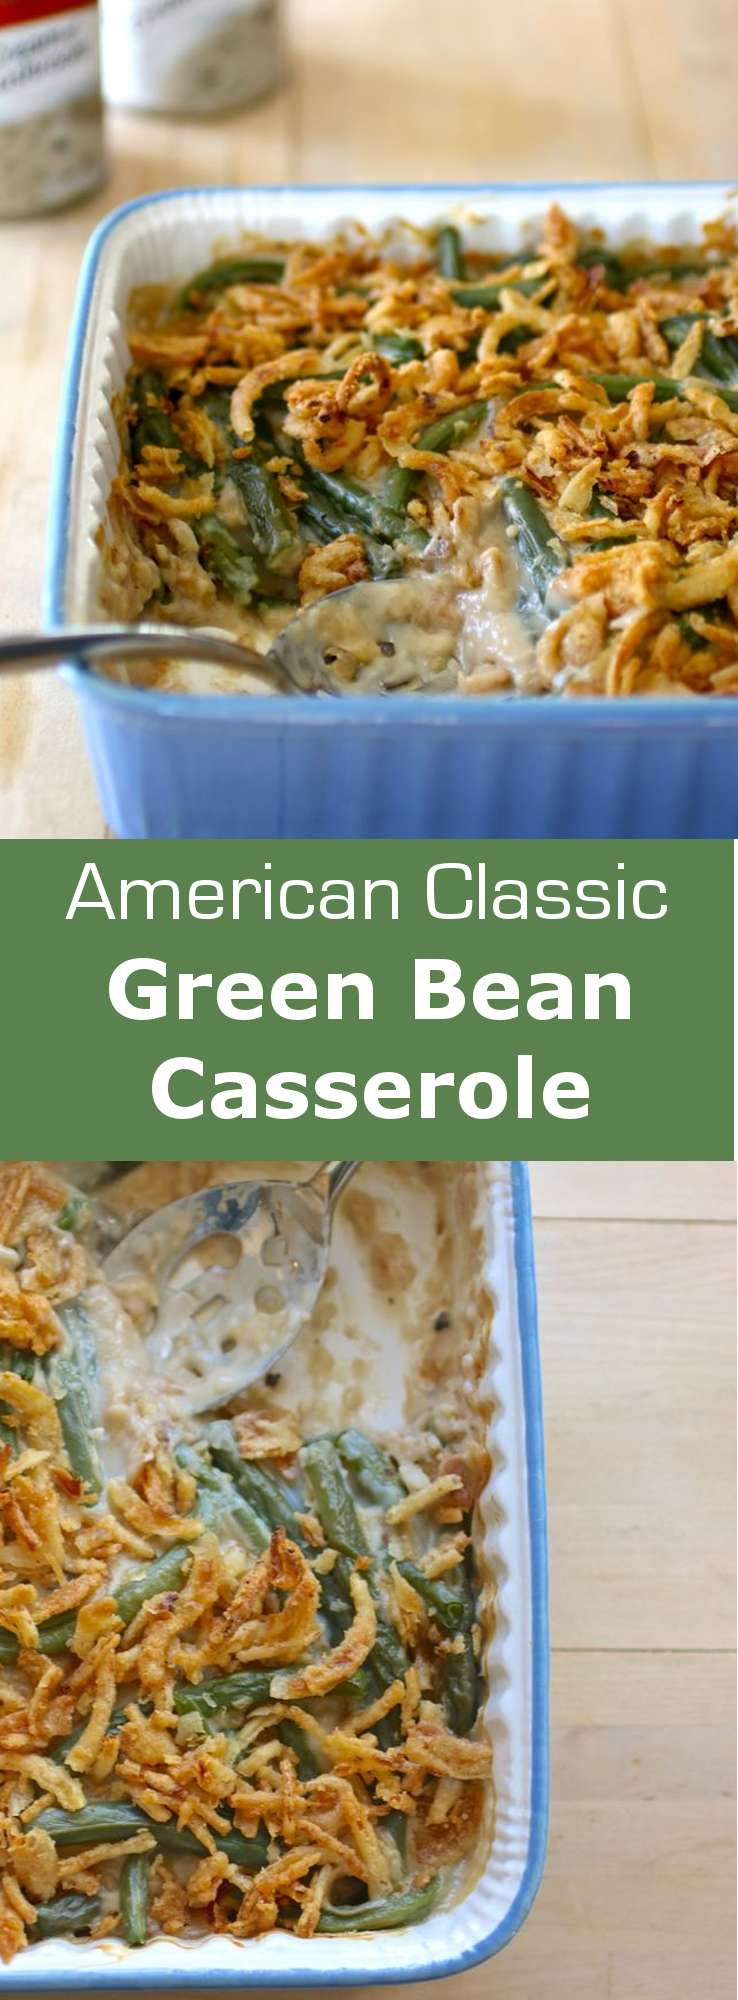 Green bean casserole is an institution in the US, especially during Thanksgiving. This easy to make recipe was born in the 50s.